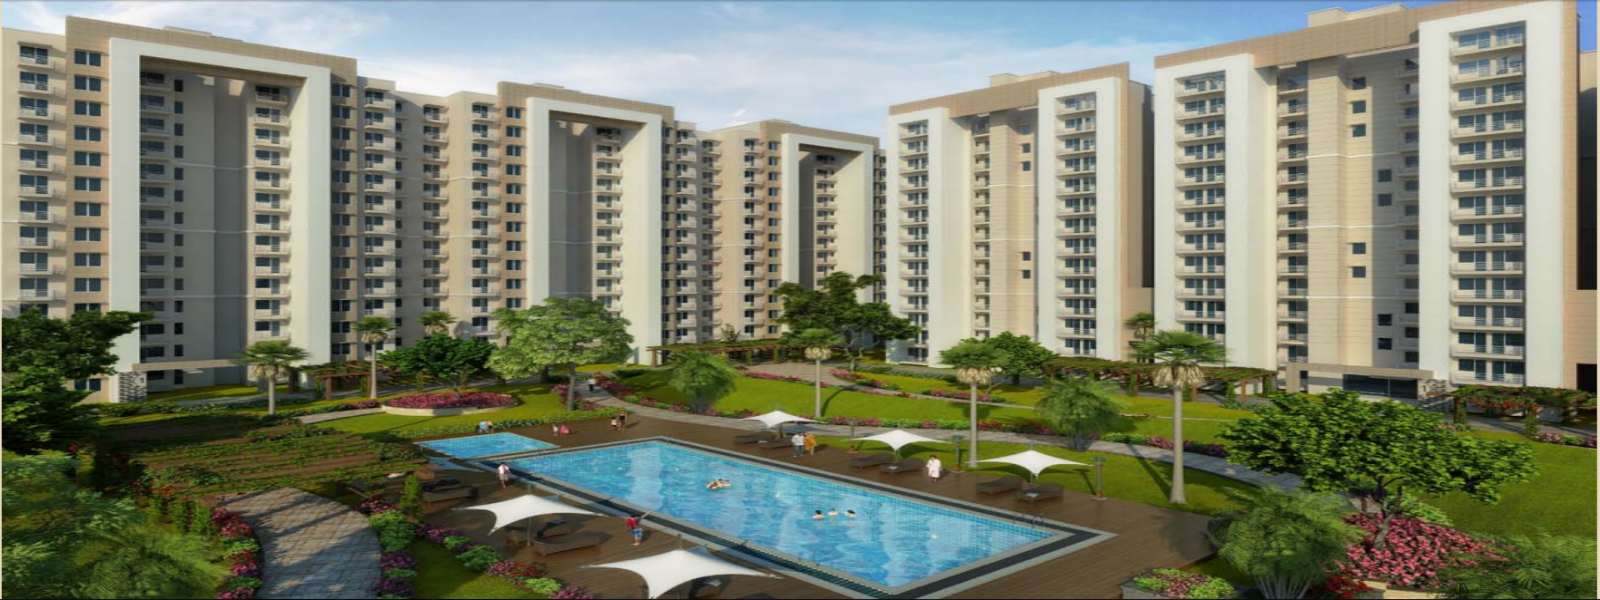 Unitech Crestview Gurgaon